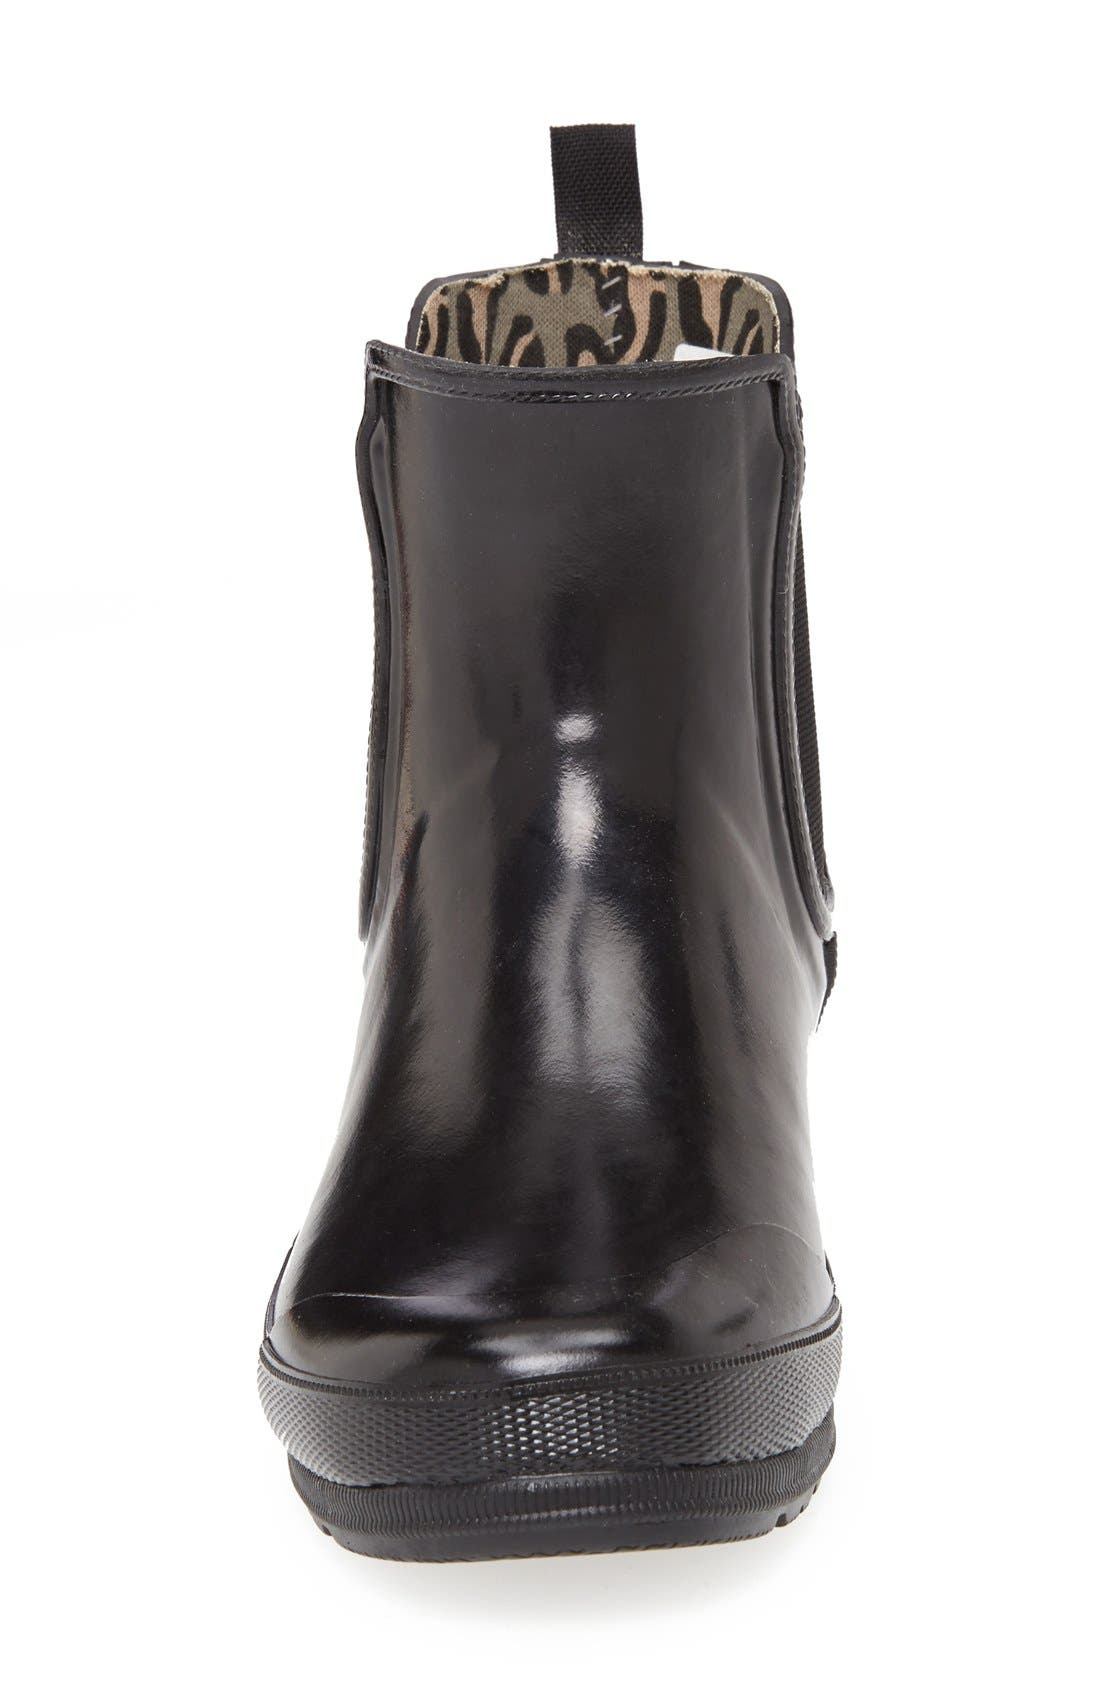 Top-Sider<sup>®</sup> 'Starling' Rubber Rain Boot,                             Alternate thumbnail 4, color,                             001